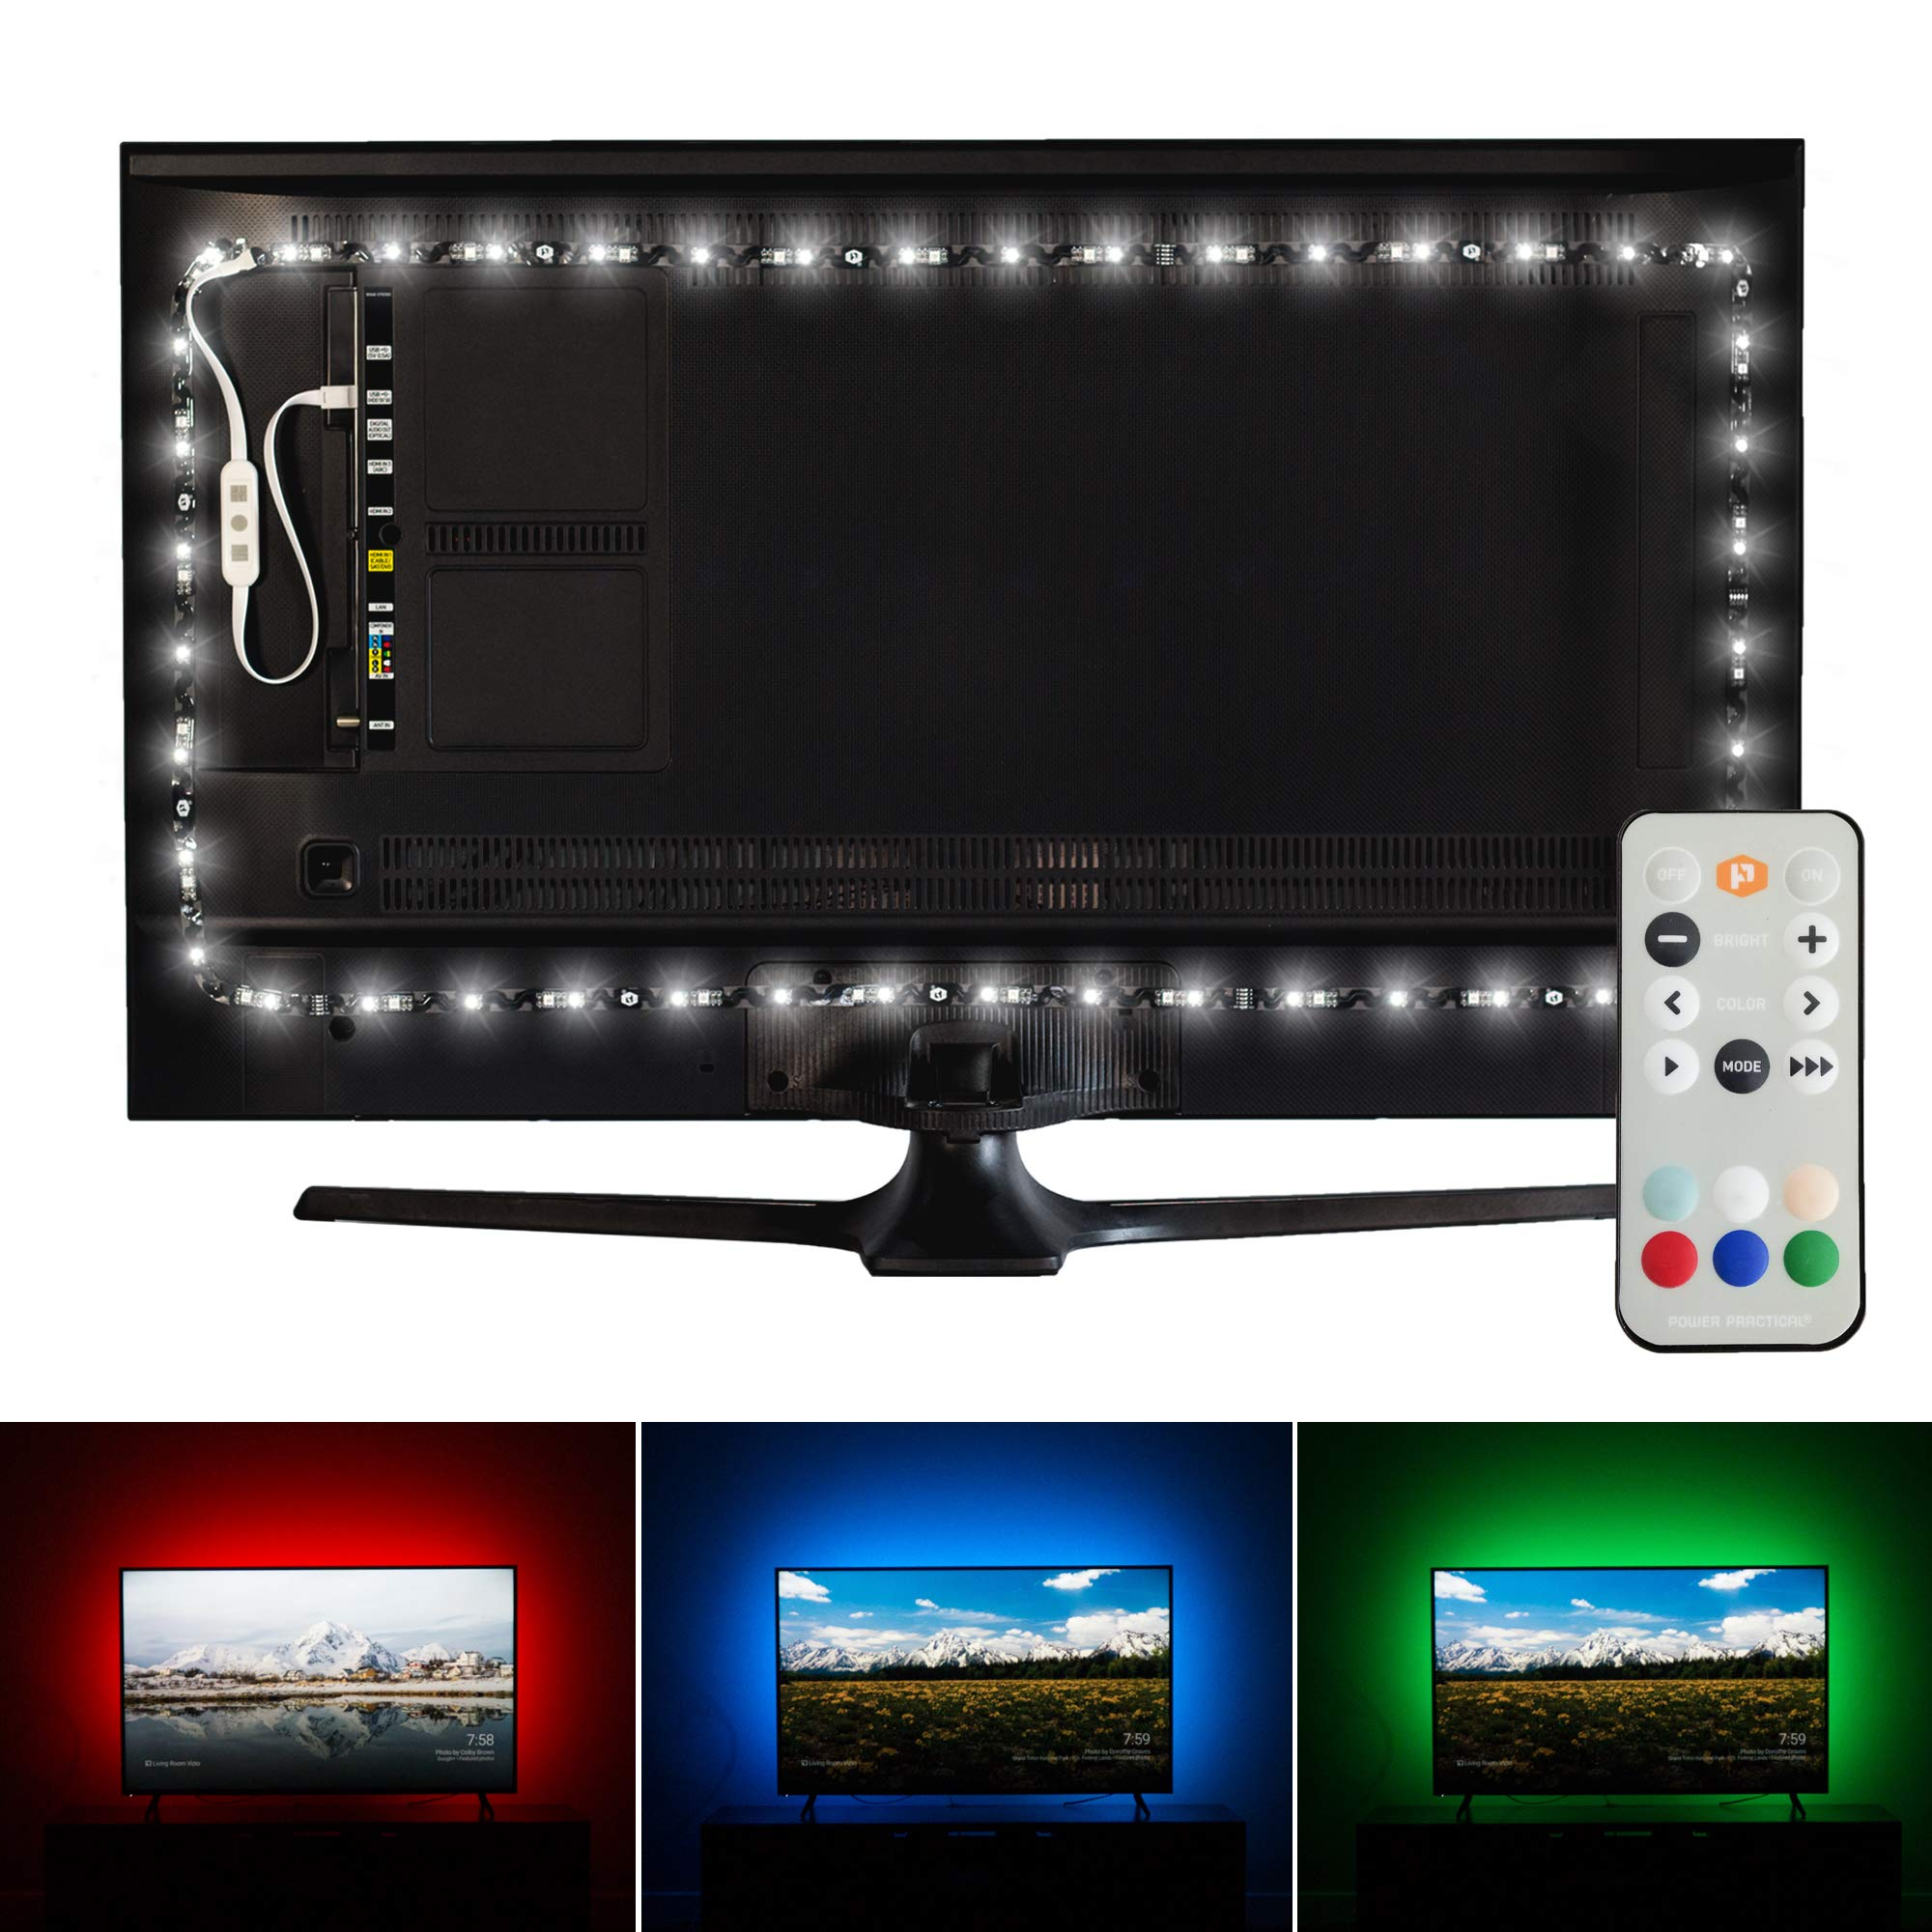 Luminoodle Professional Bias Lighting for HDTV, 15 Colors + 6500K True White LED TV Backlight, Adhesive RGB+W Strip Lights with Wireless Remote, Dimmer - Pro - XX-Large (60''-80'' TV)